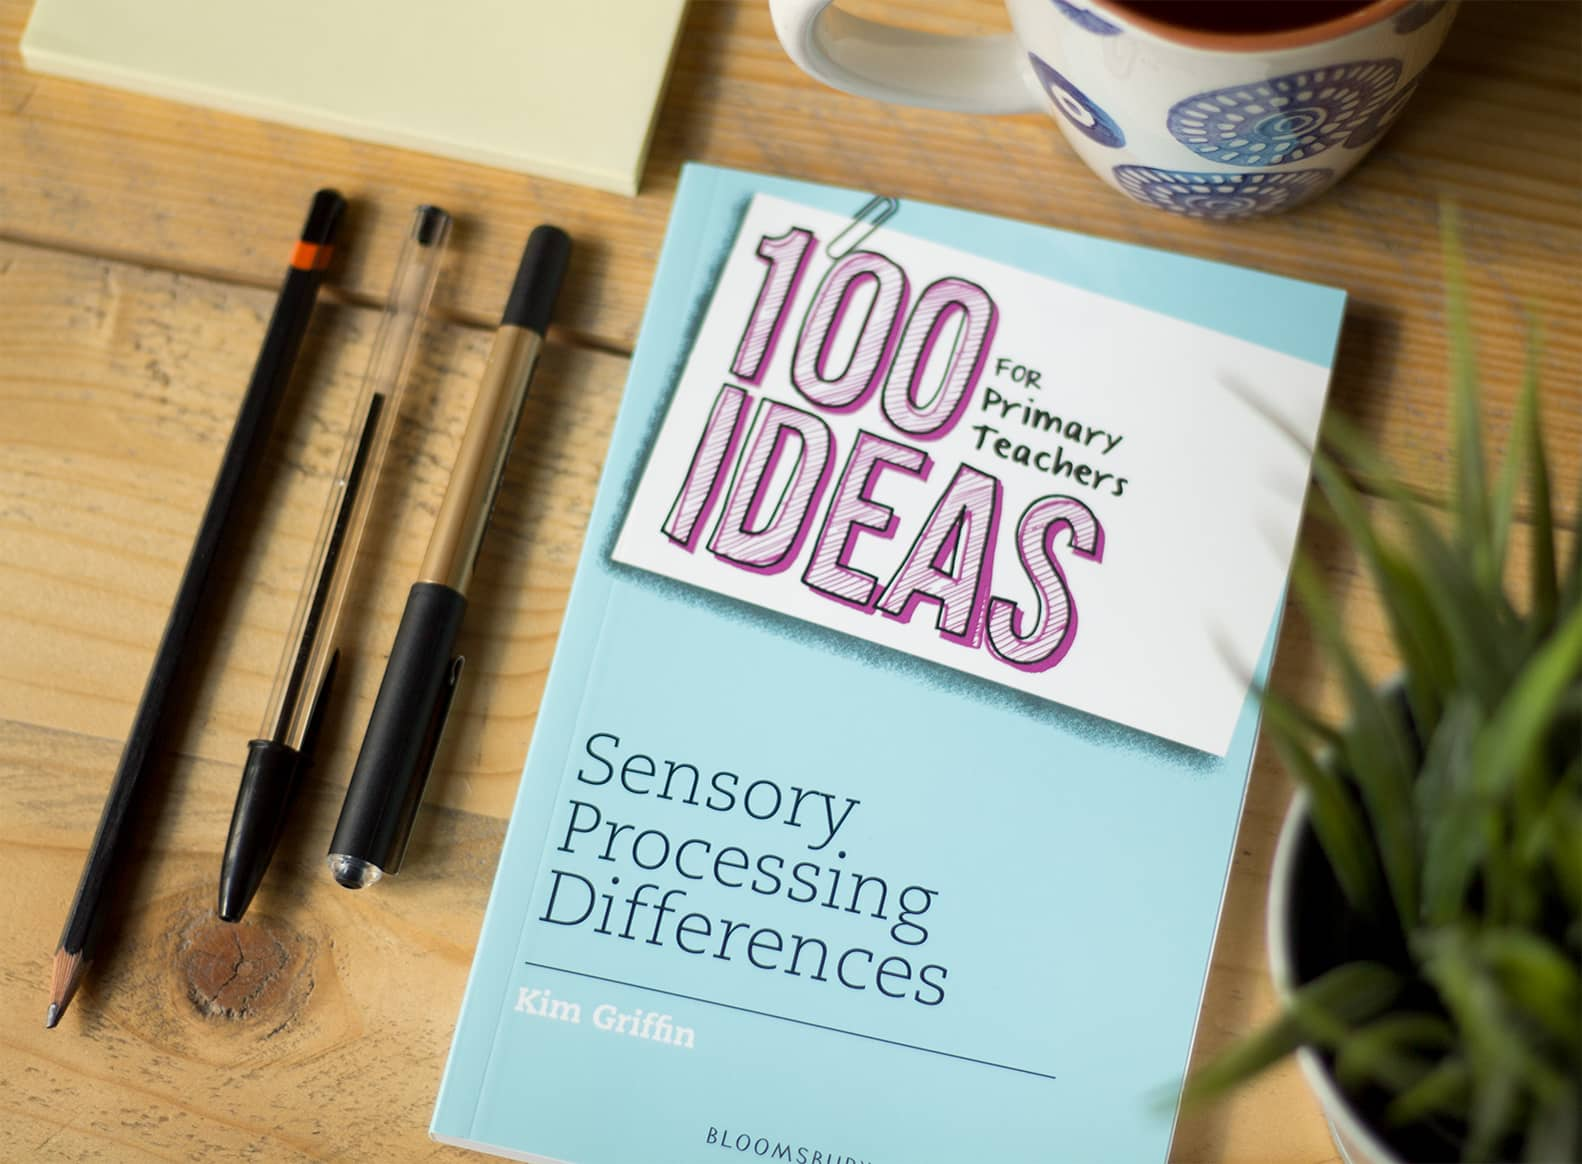 100 ideas for primary teachers sensory process book picture with pens beside it